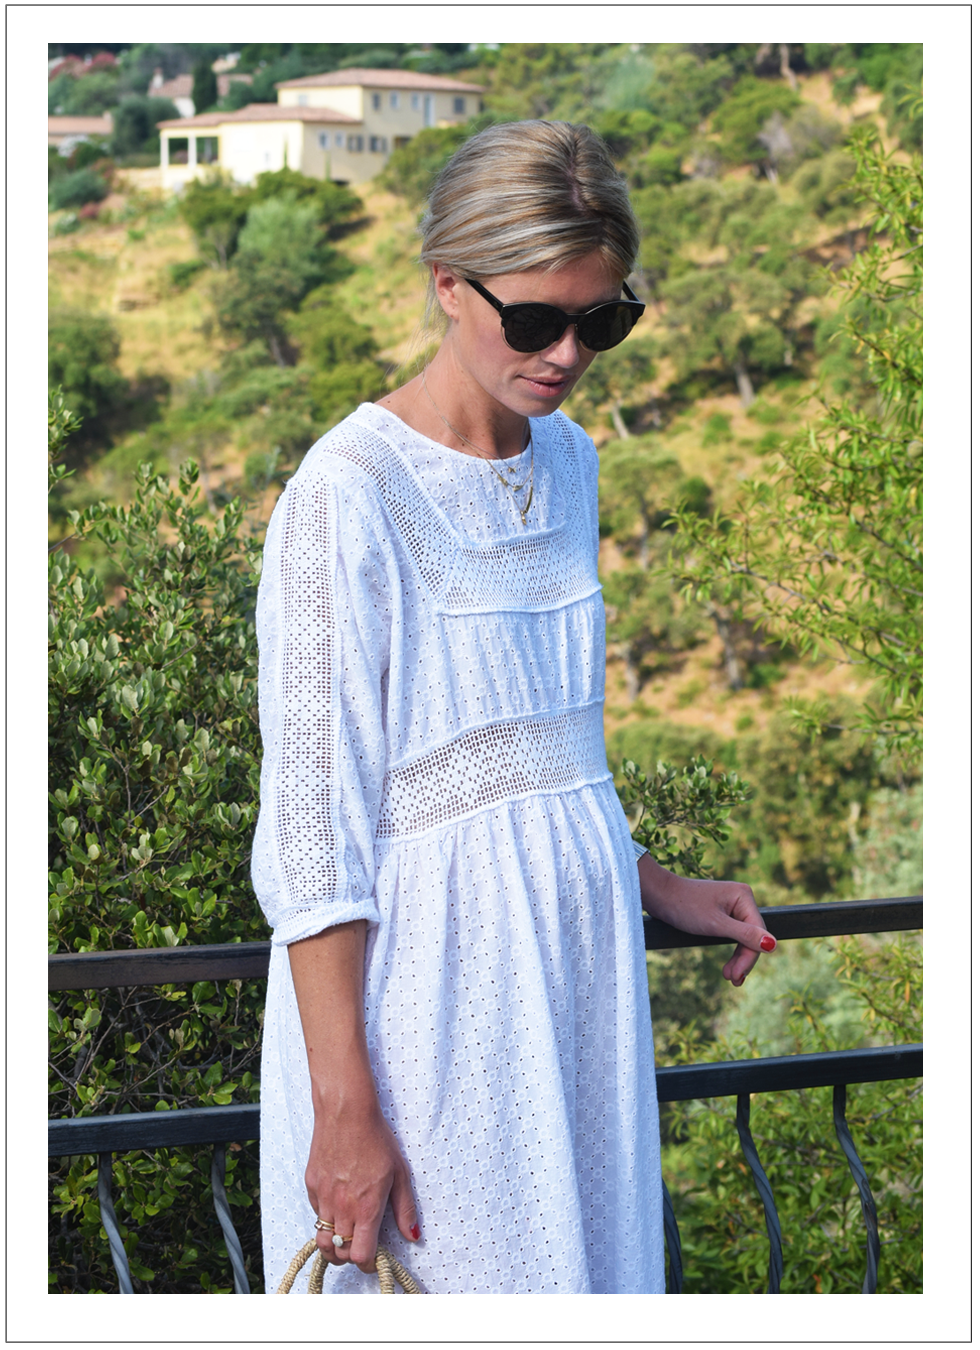 Outfit of the day, N°21, bettina Vermillon, Minitials, Anne Zellien, Mia Zia, Dior, Dewolf, ootd, style, fashion, blogger, dress, midi, maternity, pregnancy, summer